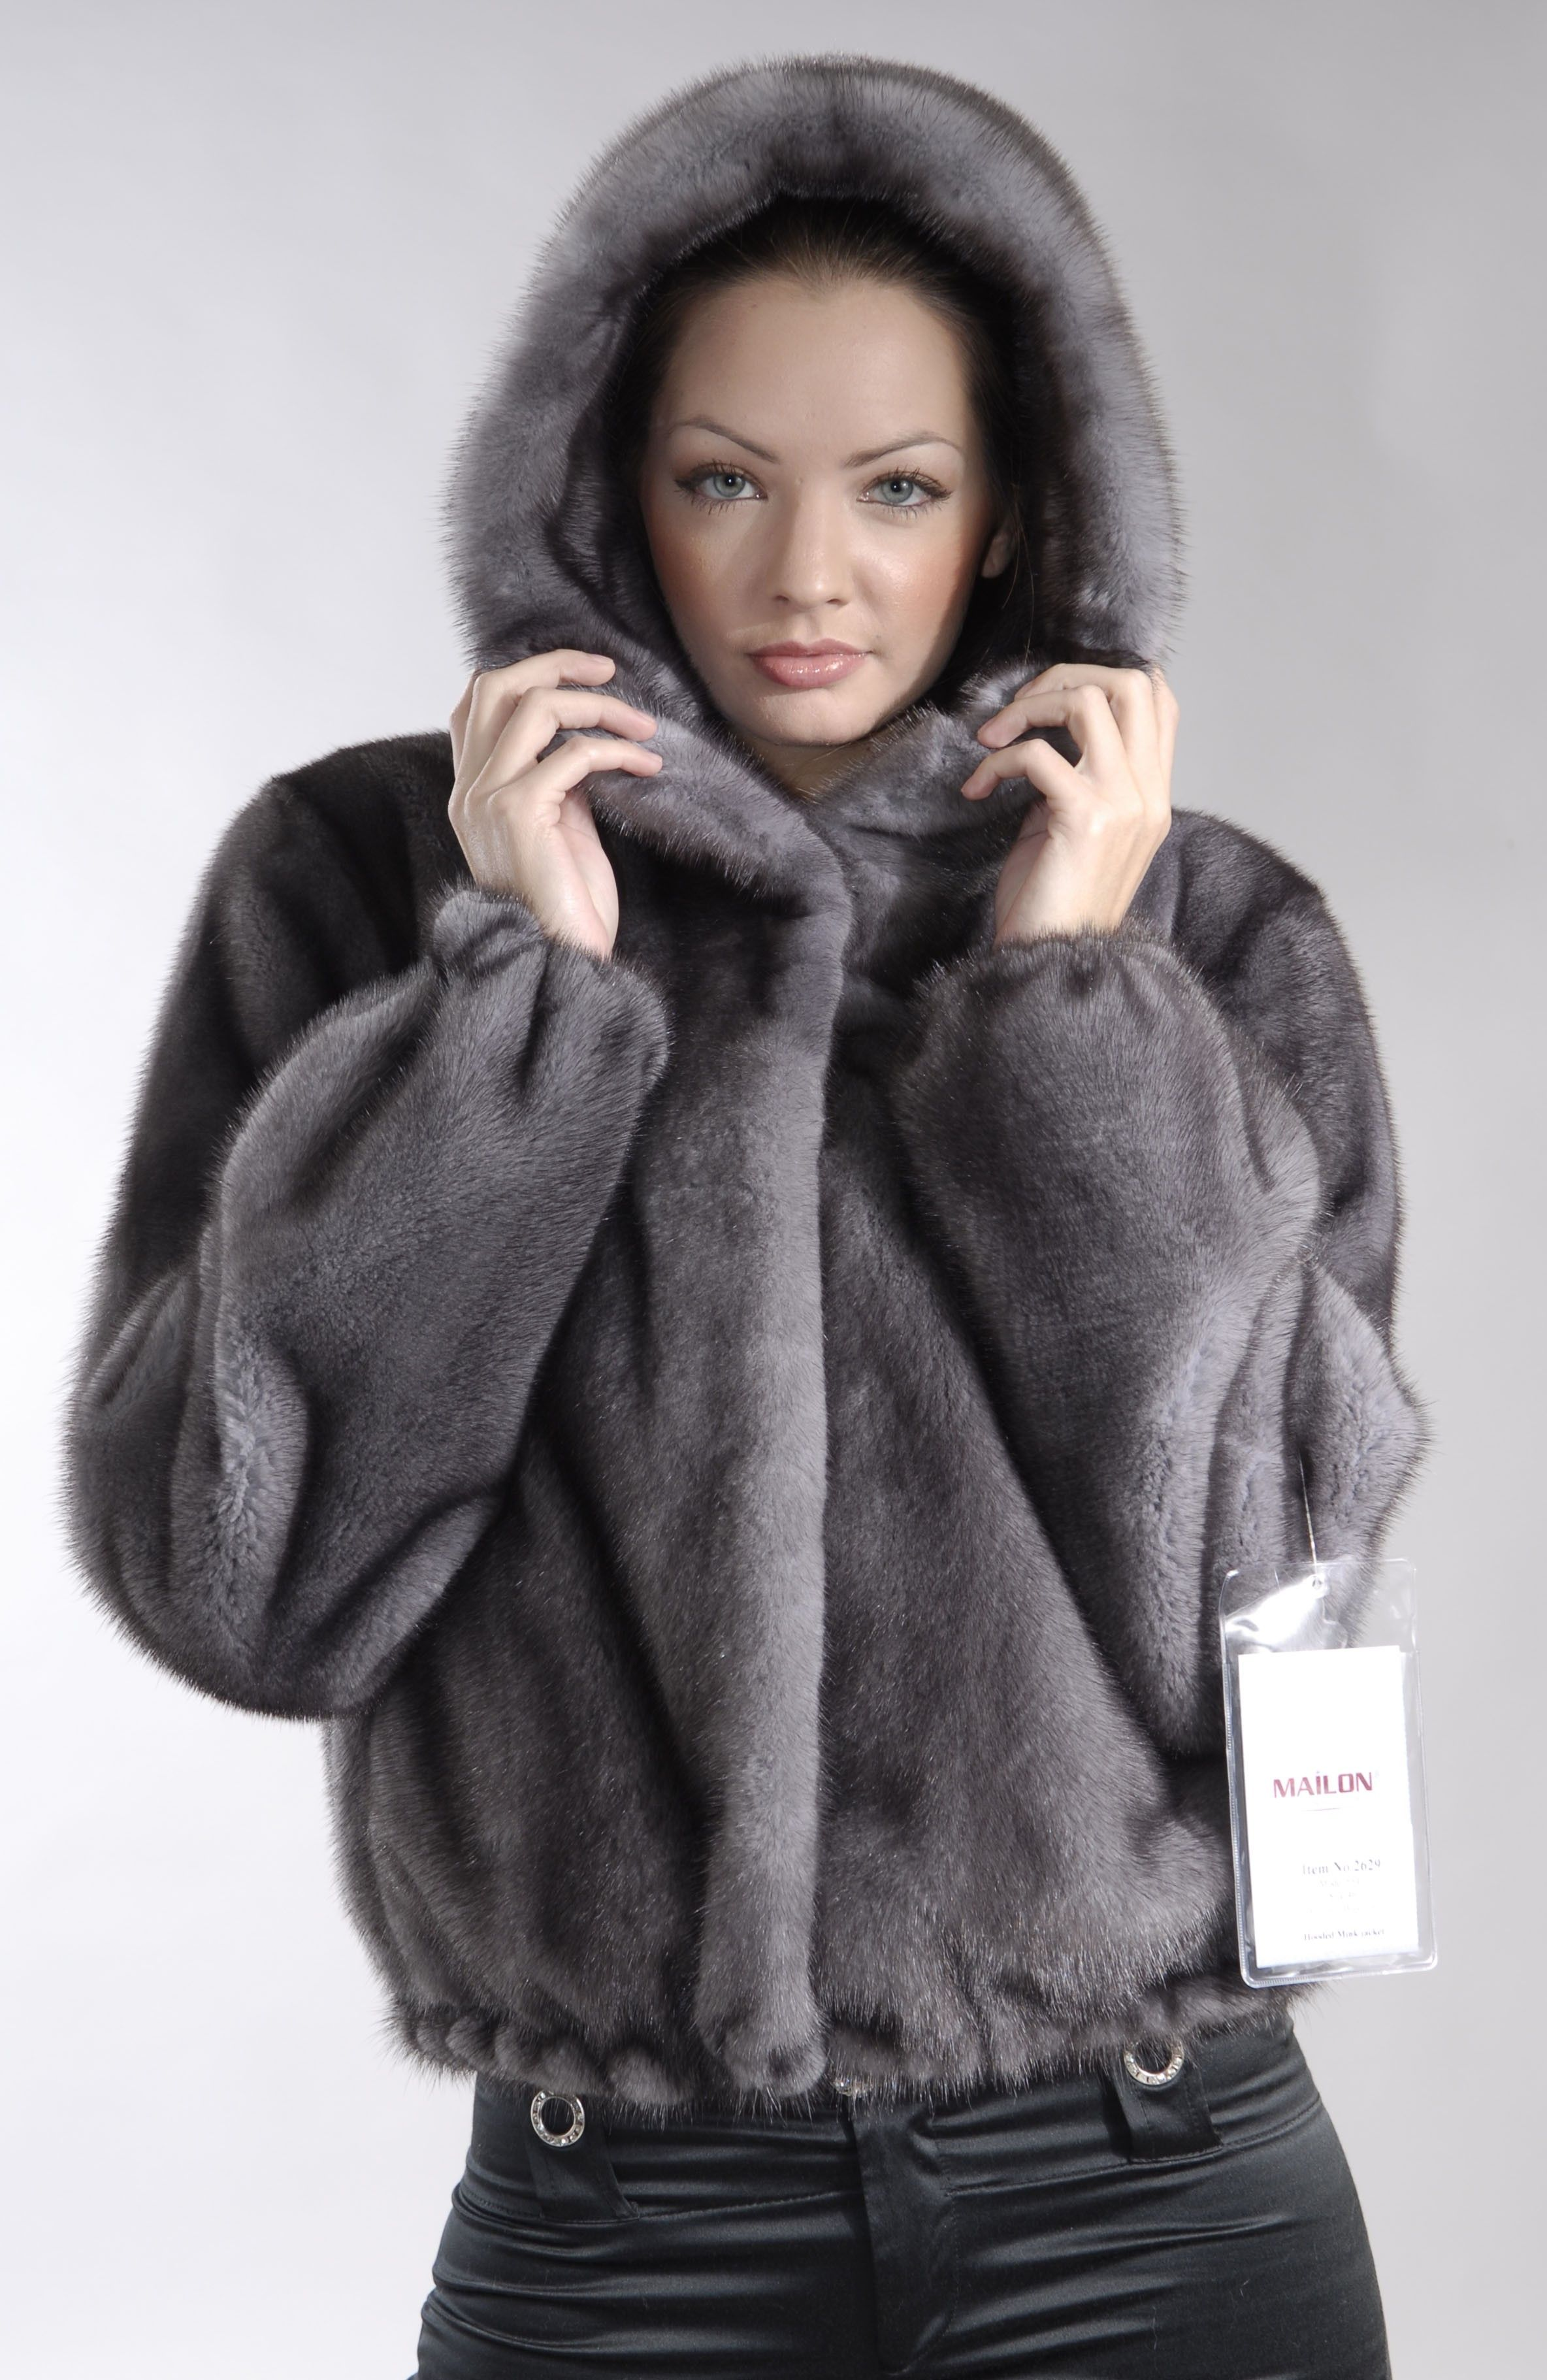 Hooded Blue Iris mink fur jacket | furs | Pinterest | Mink fur ...